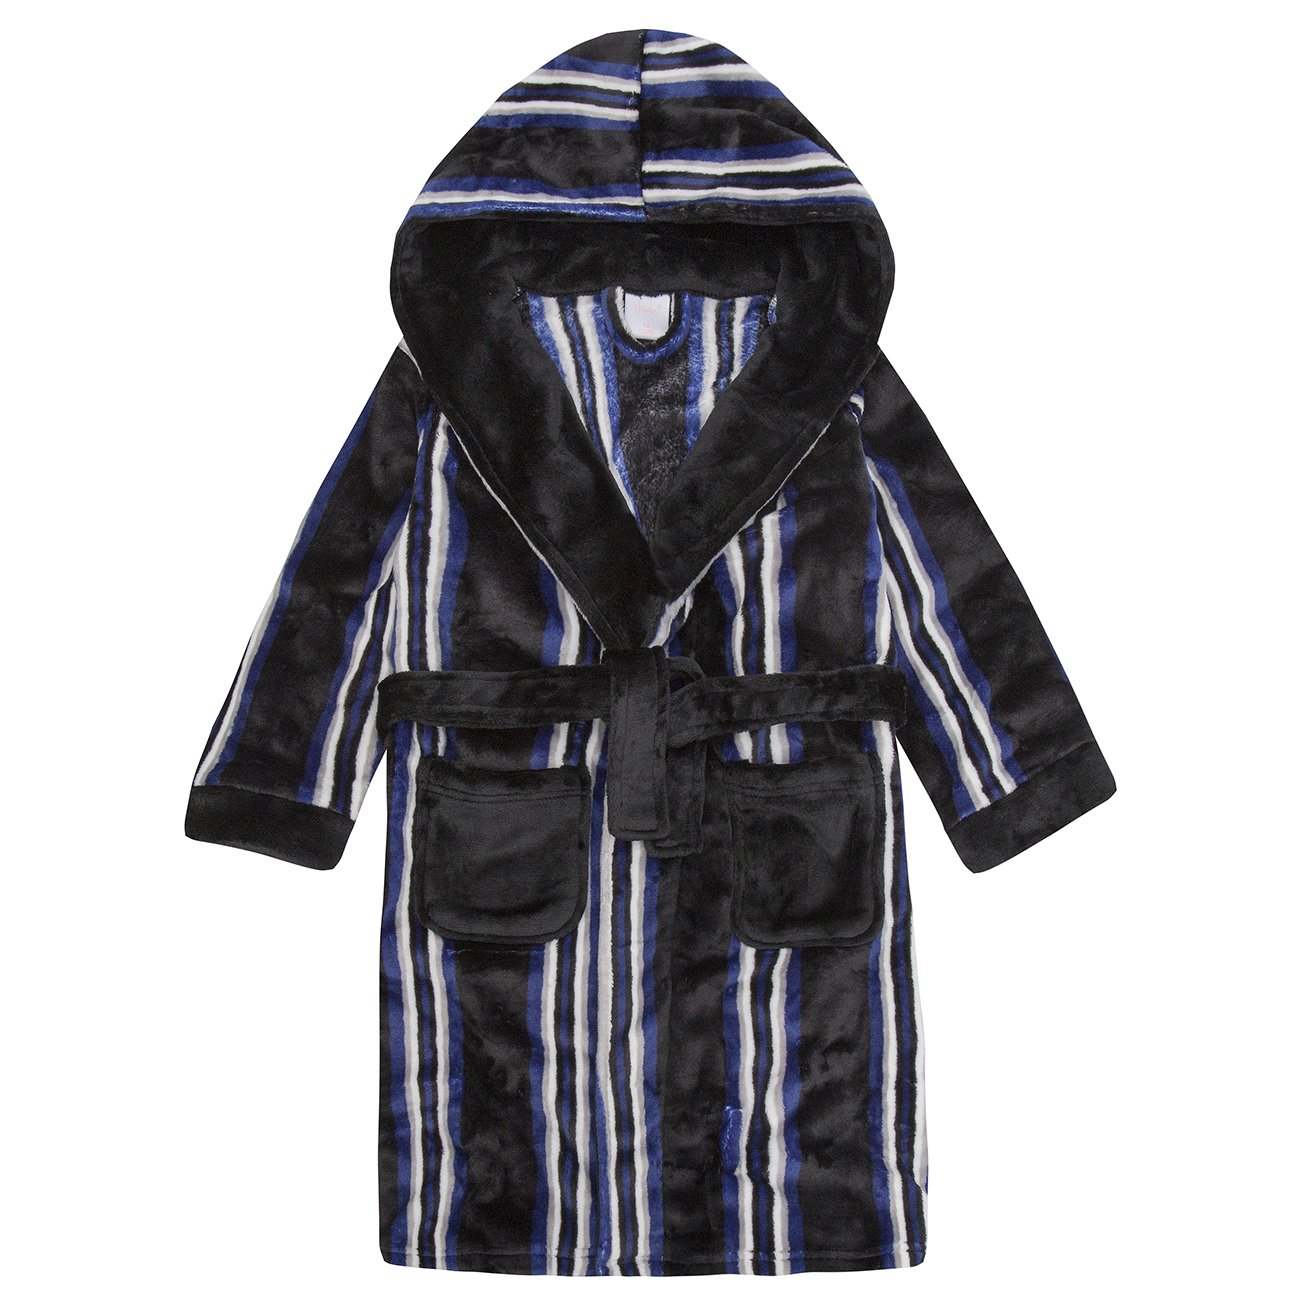 4Kidz Childrens Boys Striped Dressing Gown - Flannel Fleece Hooded Night Robe Black 13